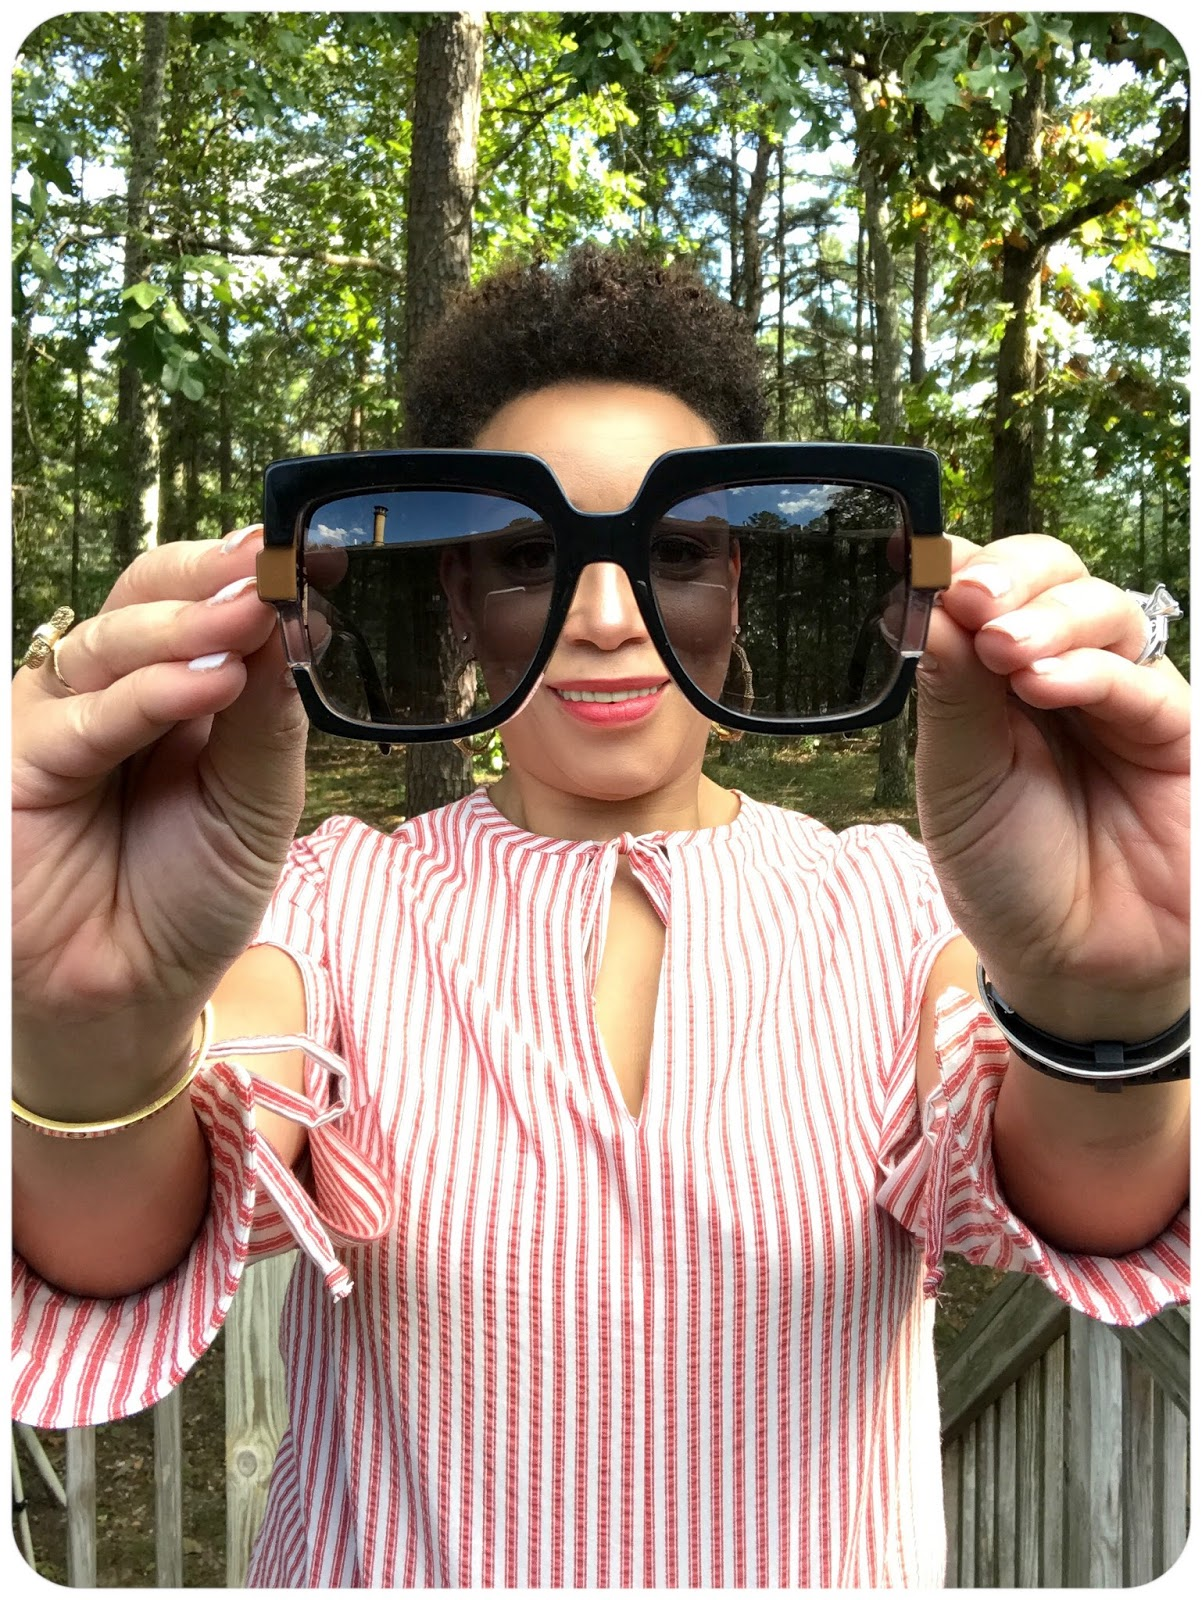 Fendi Sunglasses from EyeDesired.com -- Erica Bunker DIYStyle!